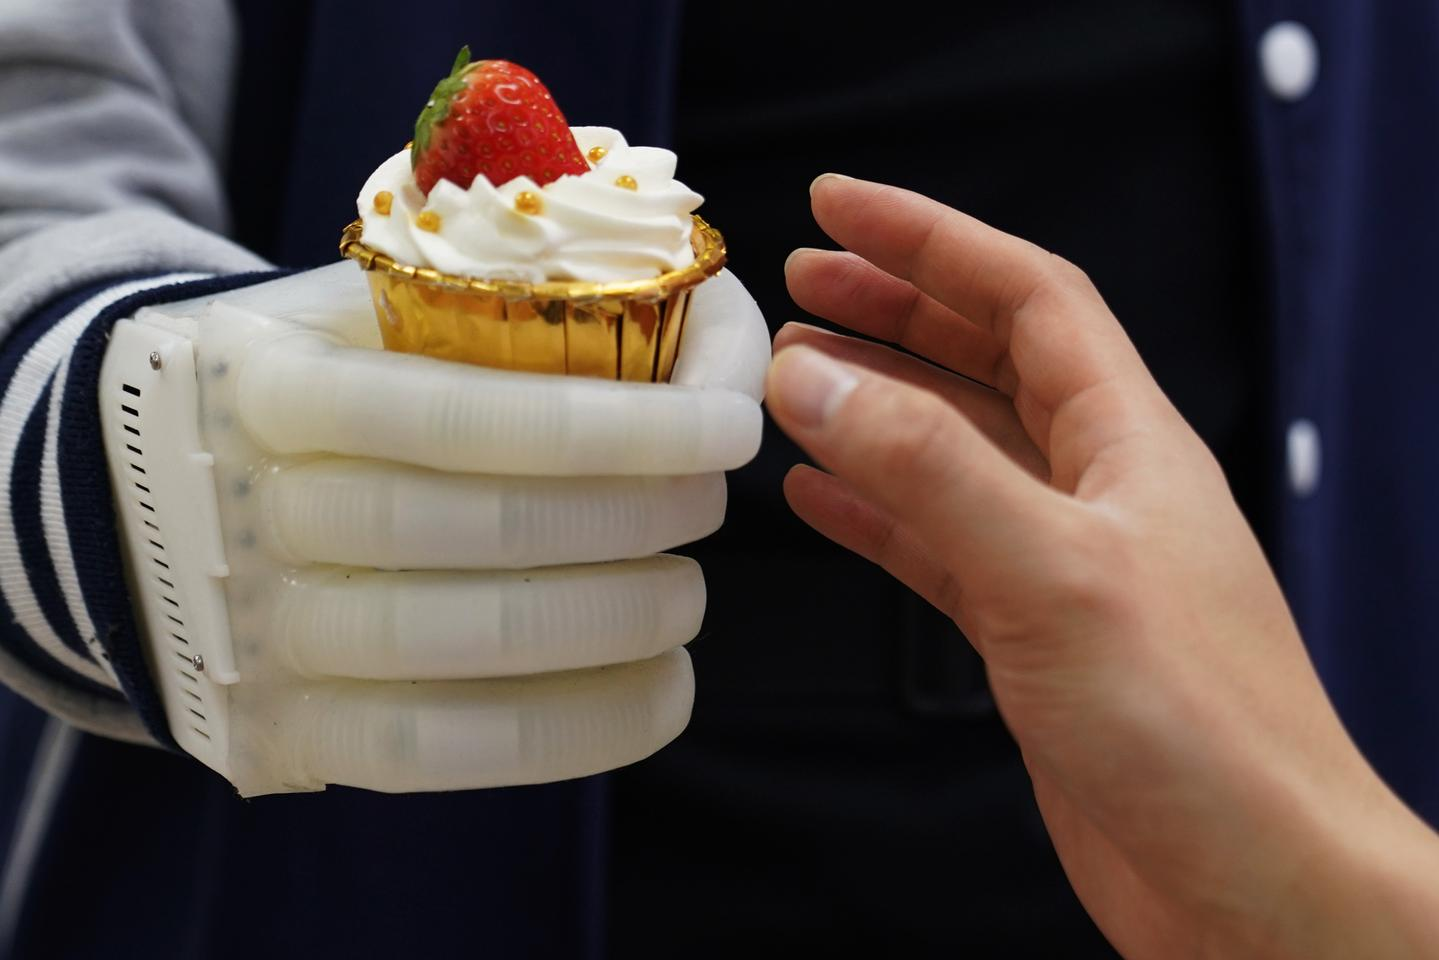 The soft prosthetic hand tips the scales at around 8 oz, and has been made using relatively inexpensive materials